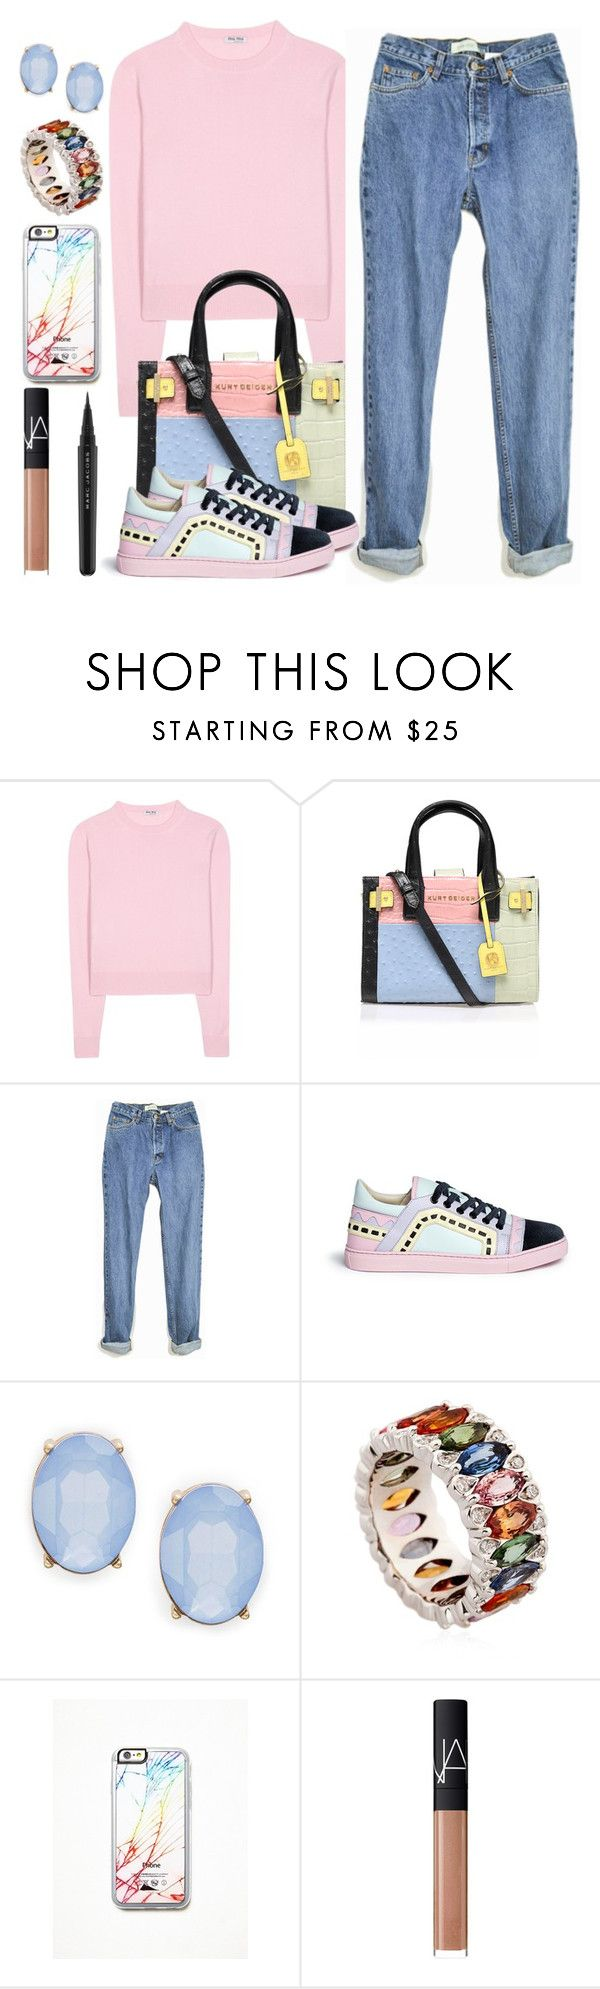 """""""Untitled #1515"""" by anarita11 ❤ liked on Polyvore featuring Miu Miu, Kurt Geiger, Sophia Webster, Cara, Niquesa, Free People, NARS Cosmetics, Marc Jacobs, women's clothing and women"""